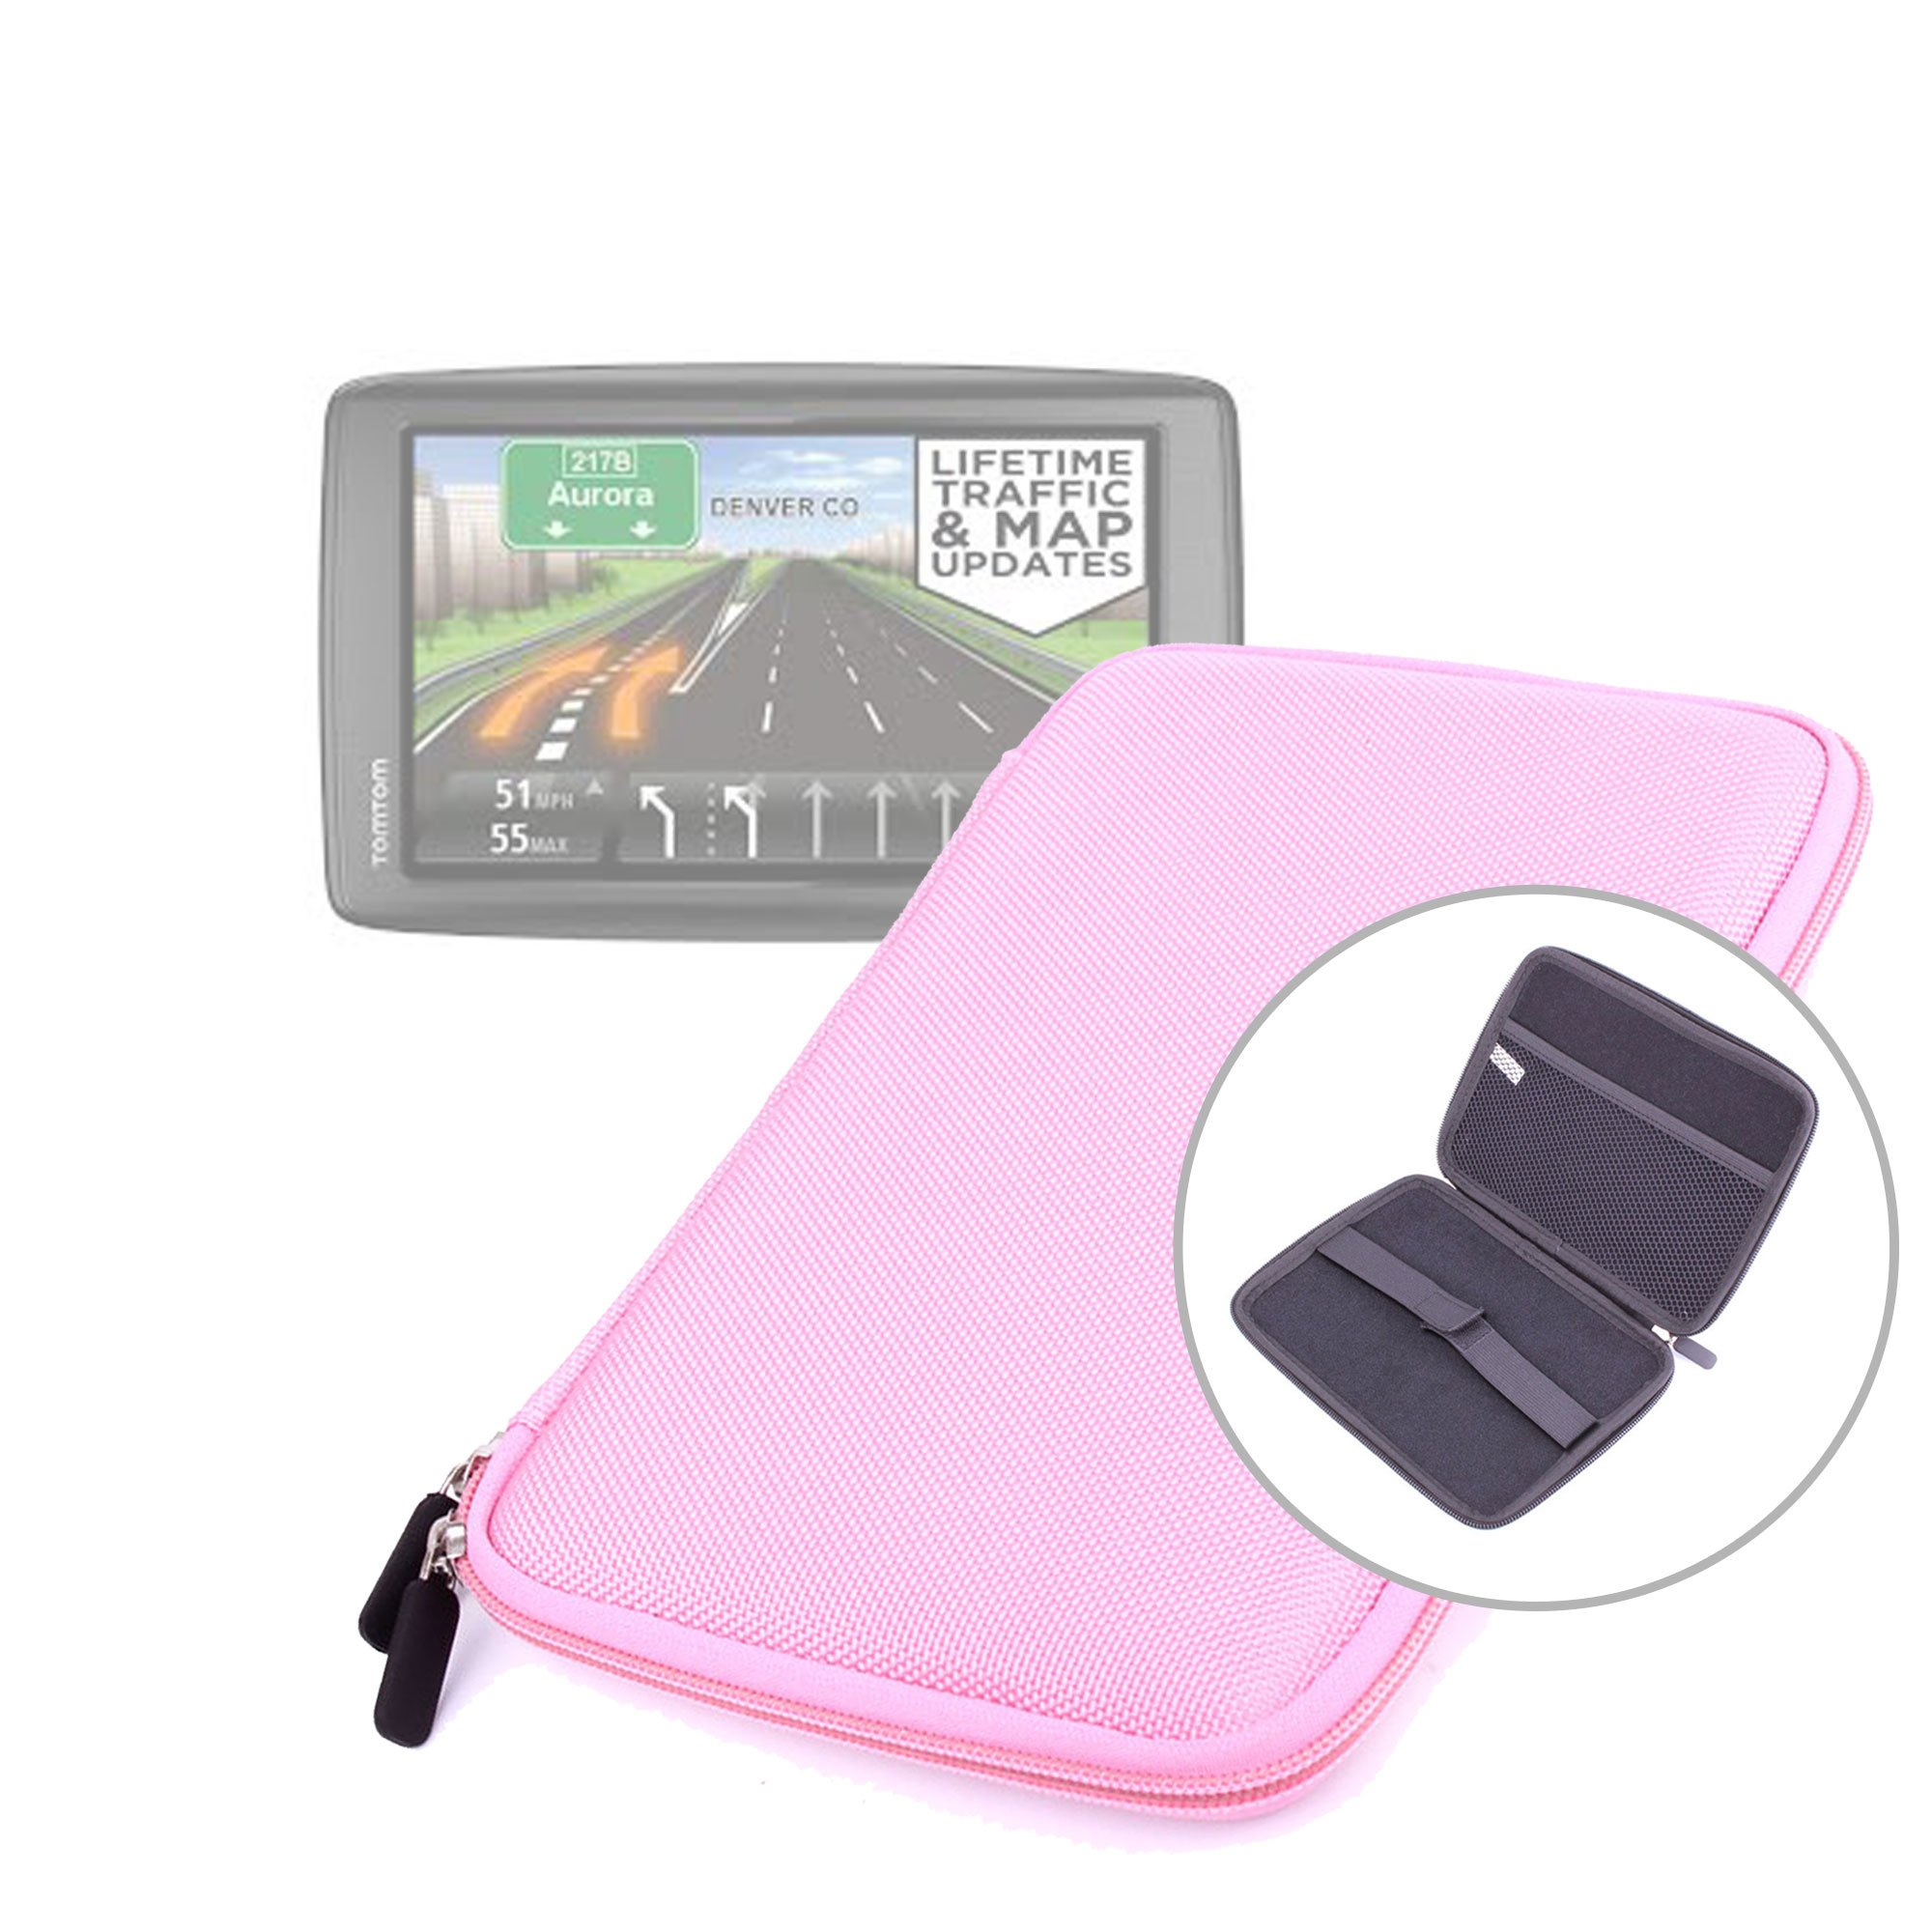 DURAGADGET Pink Shell Hard EVA Cover Case And Cover with Dual Zips for TomTom VIA 1605TM 6-Inch GPS Navigator with Lifetime Traffic & Maps & TomTom VIA 1605M GPS Navigator with Lifetime Maps